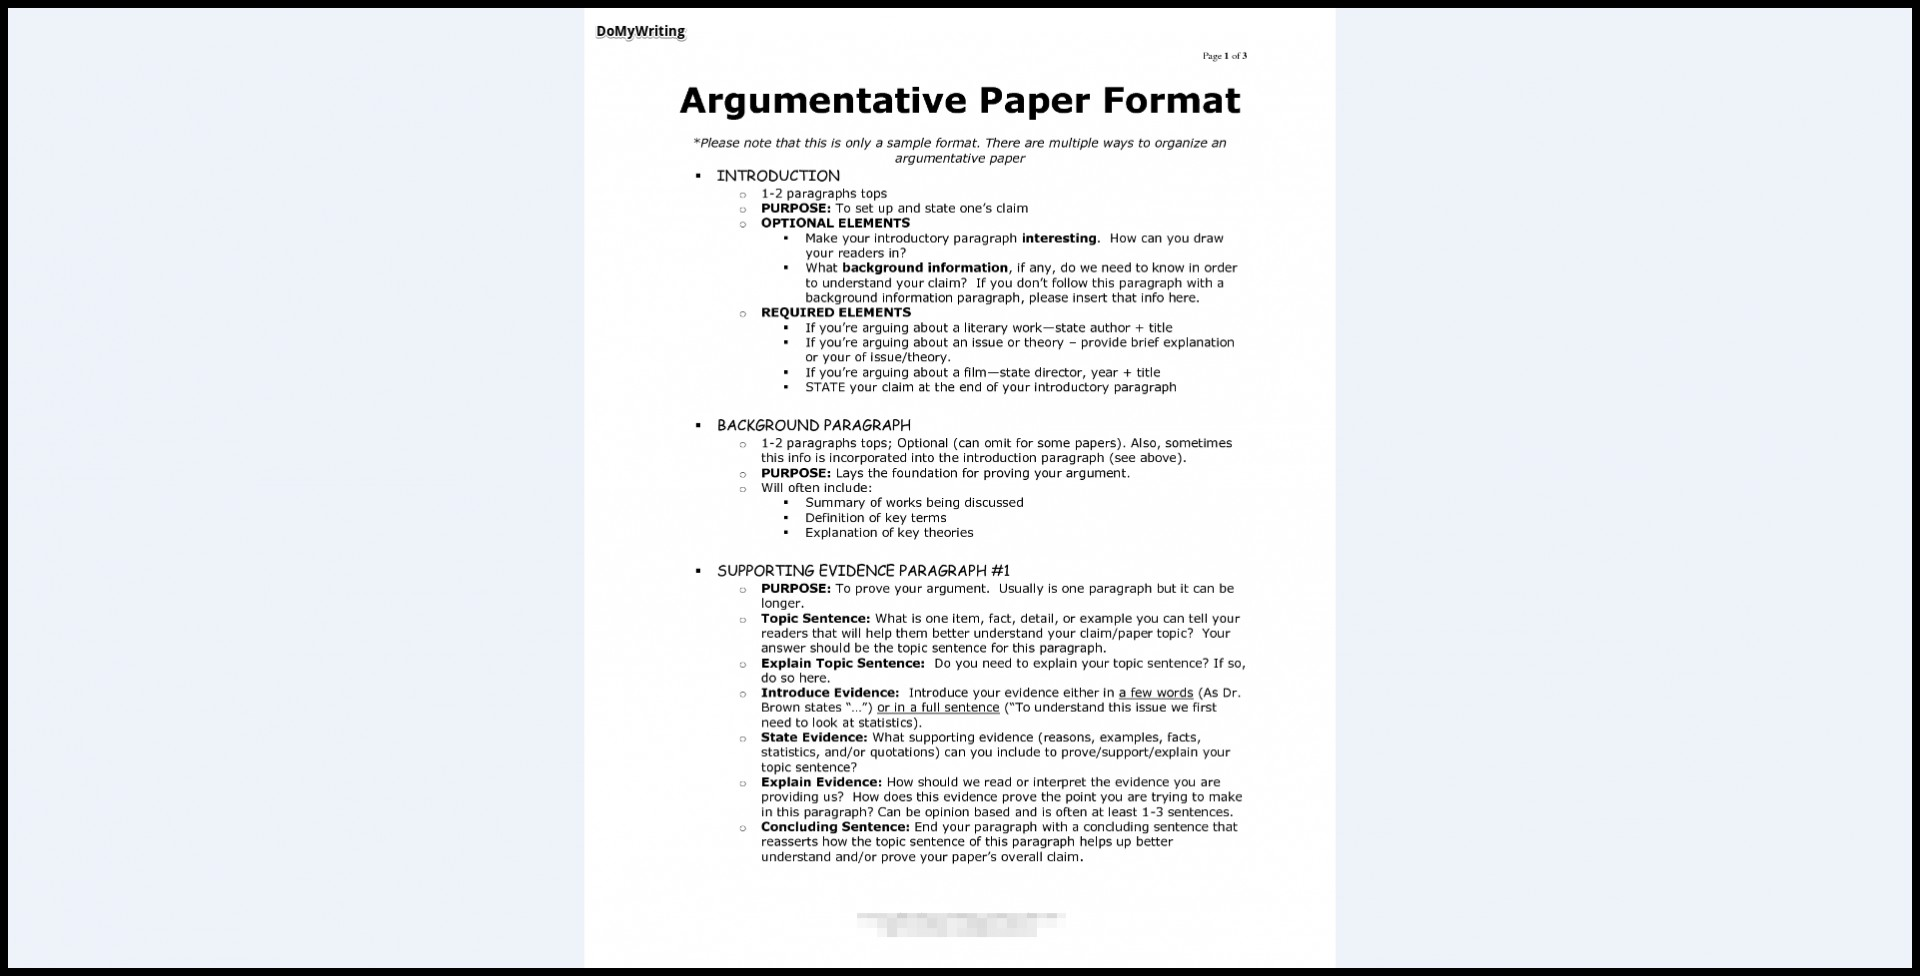 006 Argumentative Research Paper Topics For College English Essay Archaicawful 1920